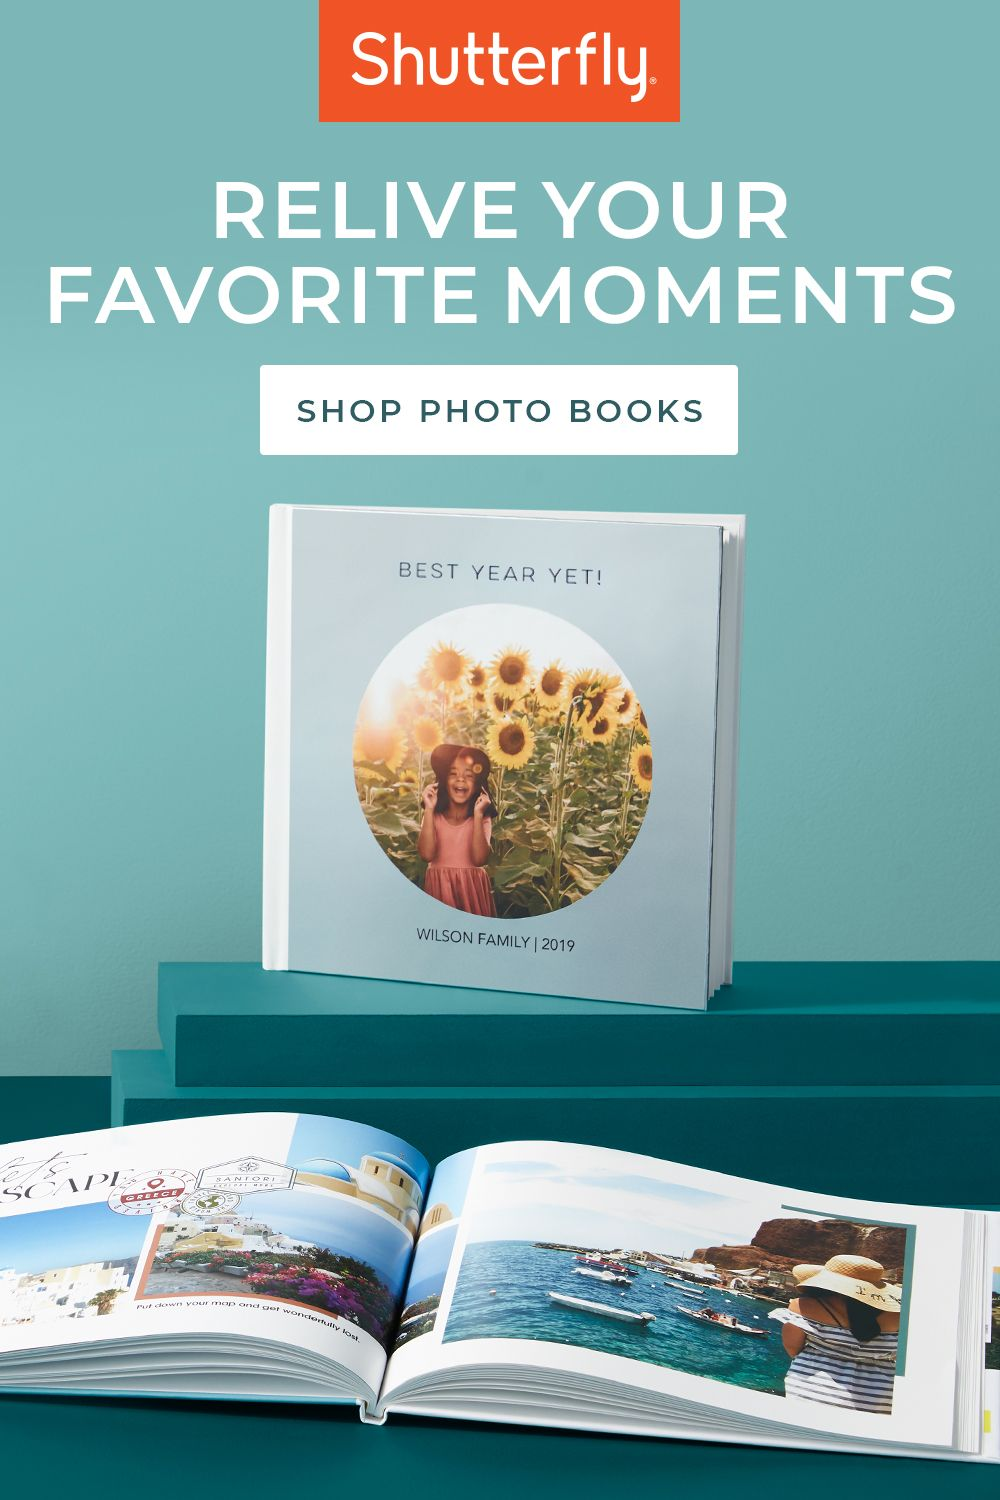 e283c4da378c0ca103df6246b1ad8c9c - How Long Does It Take To Get Your Shutterfly Book